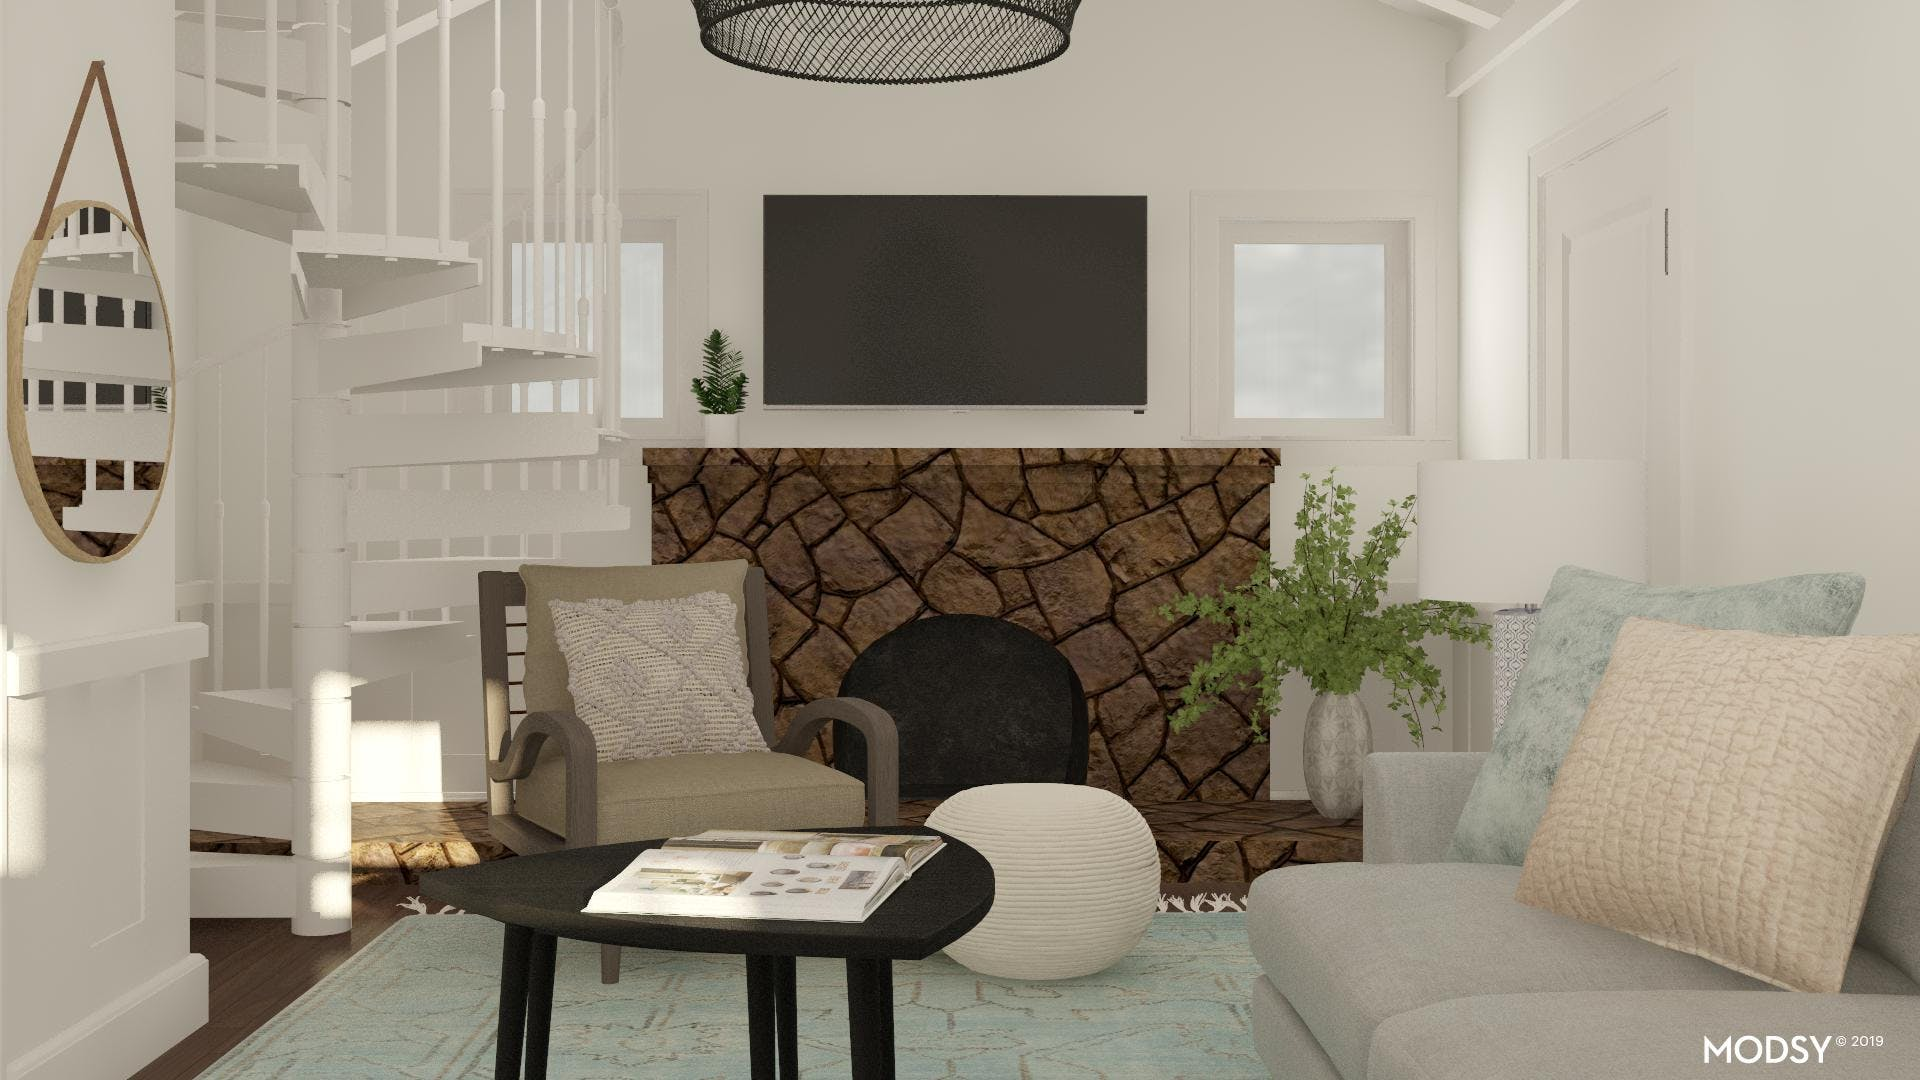 Simple and Compact: A Living Room